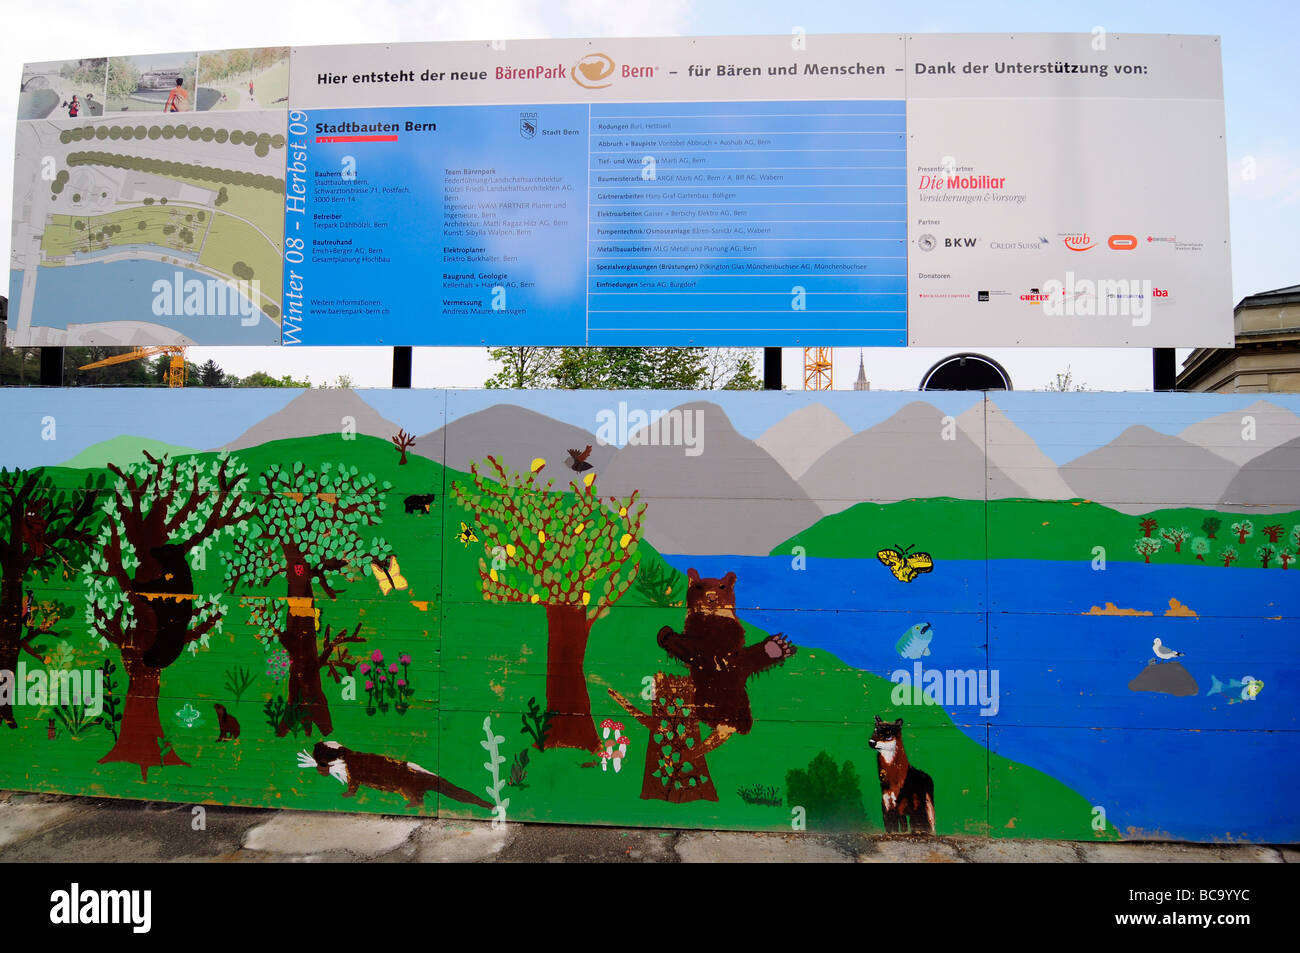 Child drawings of bears to promote a new bears pit in central Bern, Switzerland - Stock Image